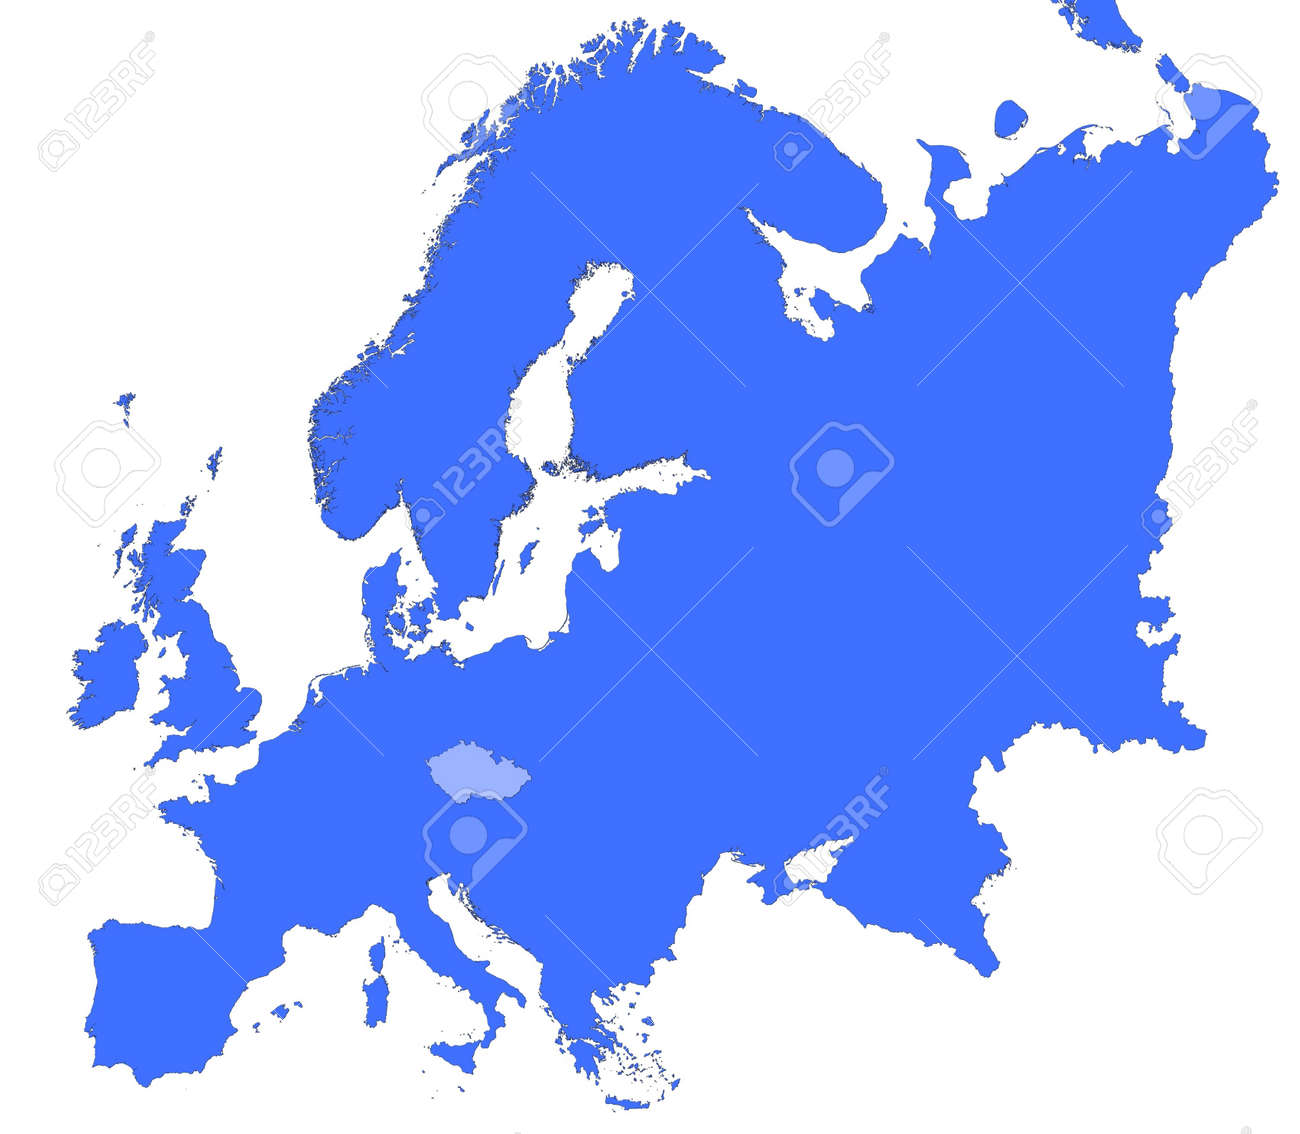 Czech Republic Location In Europe Map Mercator Projection Stock